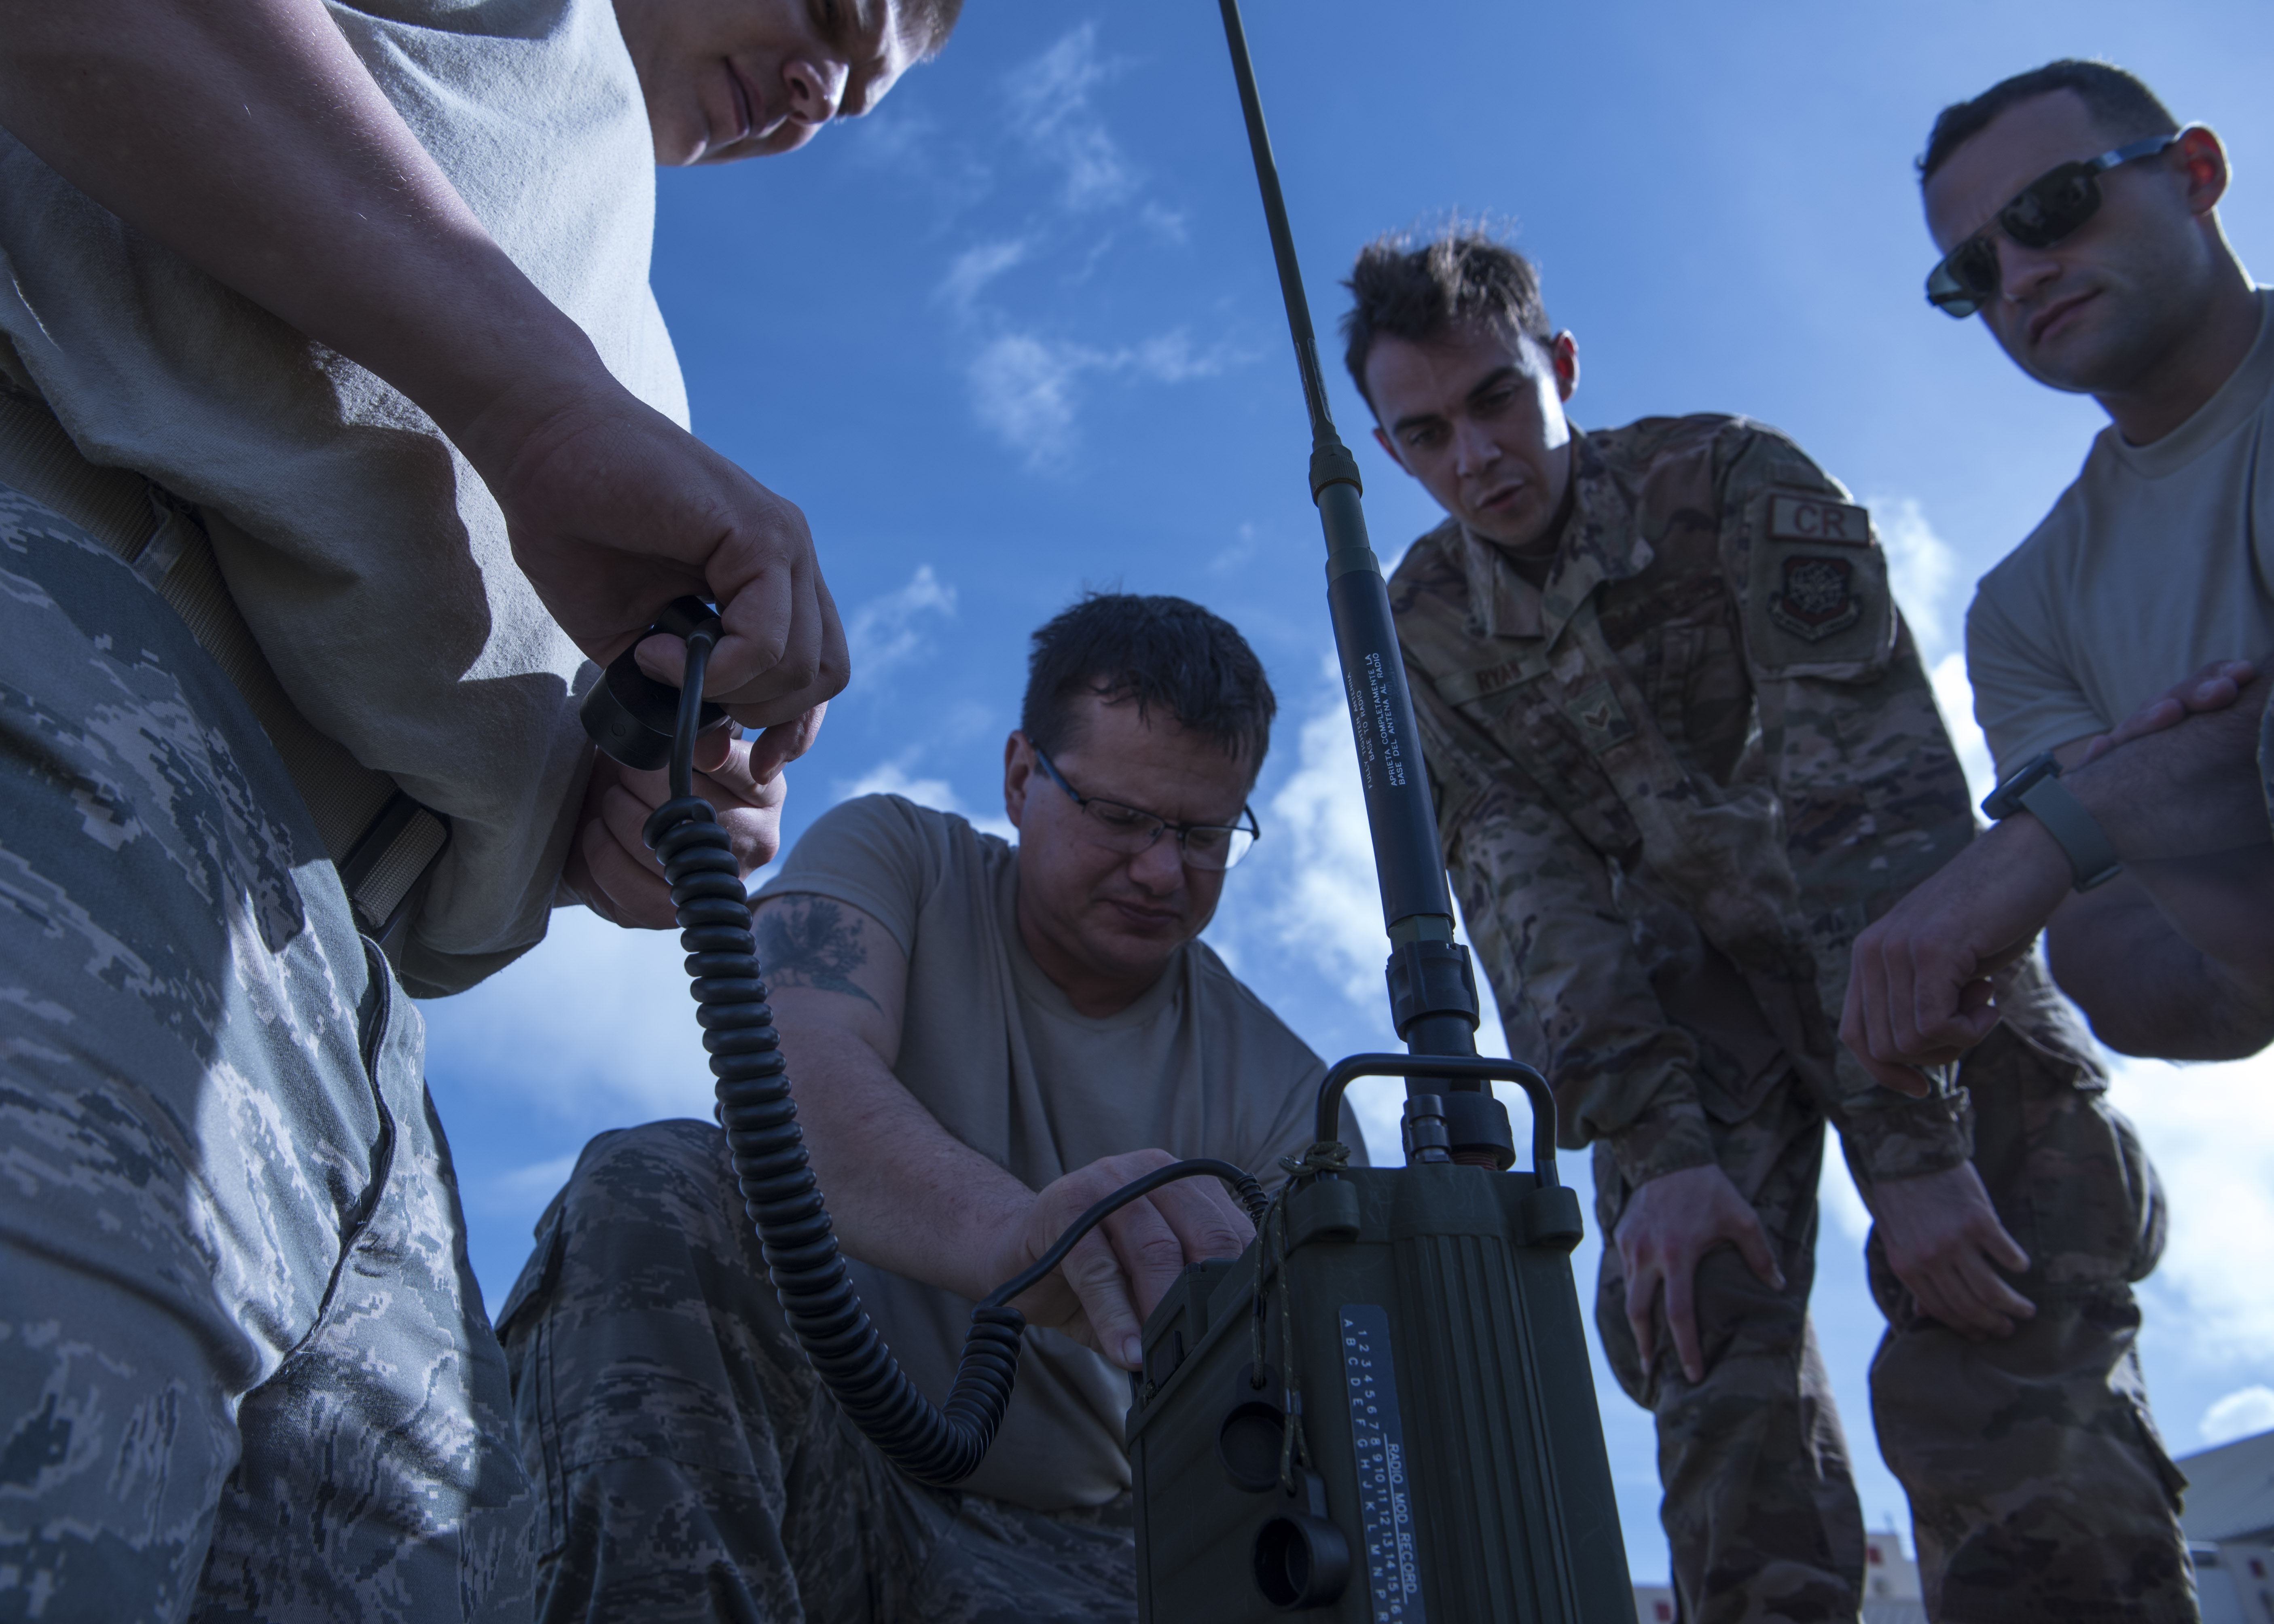 Tech. Sgt. Jared Bull, Master Sgt. Alan Plant, Senoir Airman Wyatt Ryan, Tech. Sgt. Nicholas Tyndal, radio frequency transition systems technicians from the 433rd Contingency Response Flight, 315th CRF, 821st Contingency Response Support Squadron, and 512th CRF, establish radio communications during exercise Patriot Palm, Jan 28, 2020, at Marine Corps Base Hawaii, Hawaii. Establishing communications within an hour of landing is a top priority to mobile units during exercise Patriot Palm.(U.S. Air Force photo/Tech Sgt. Della Creech)